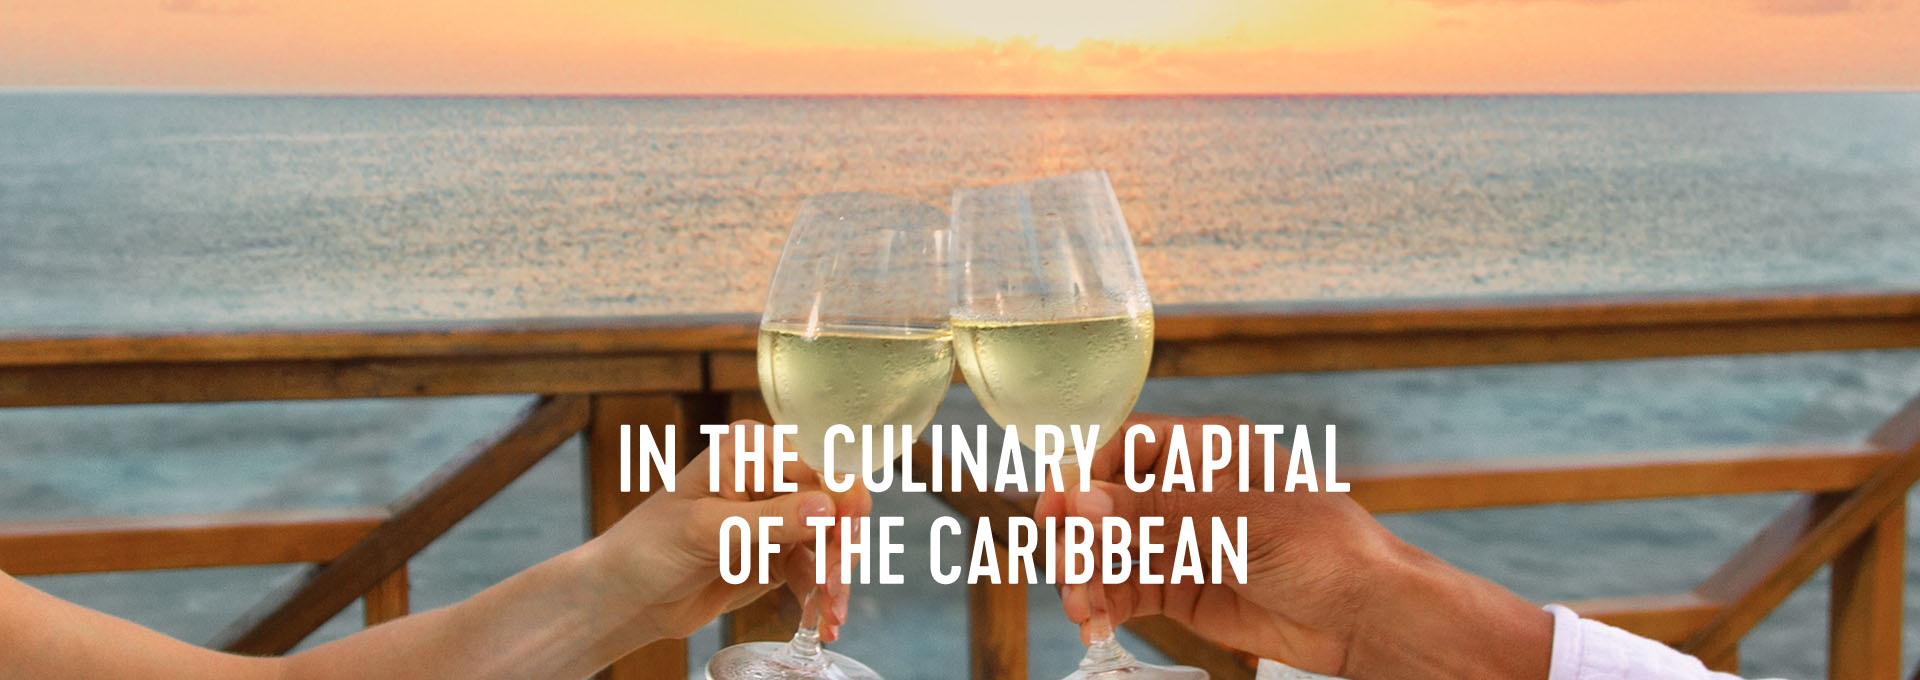 In the Culinary Capital of the Caribbean